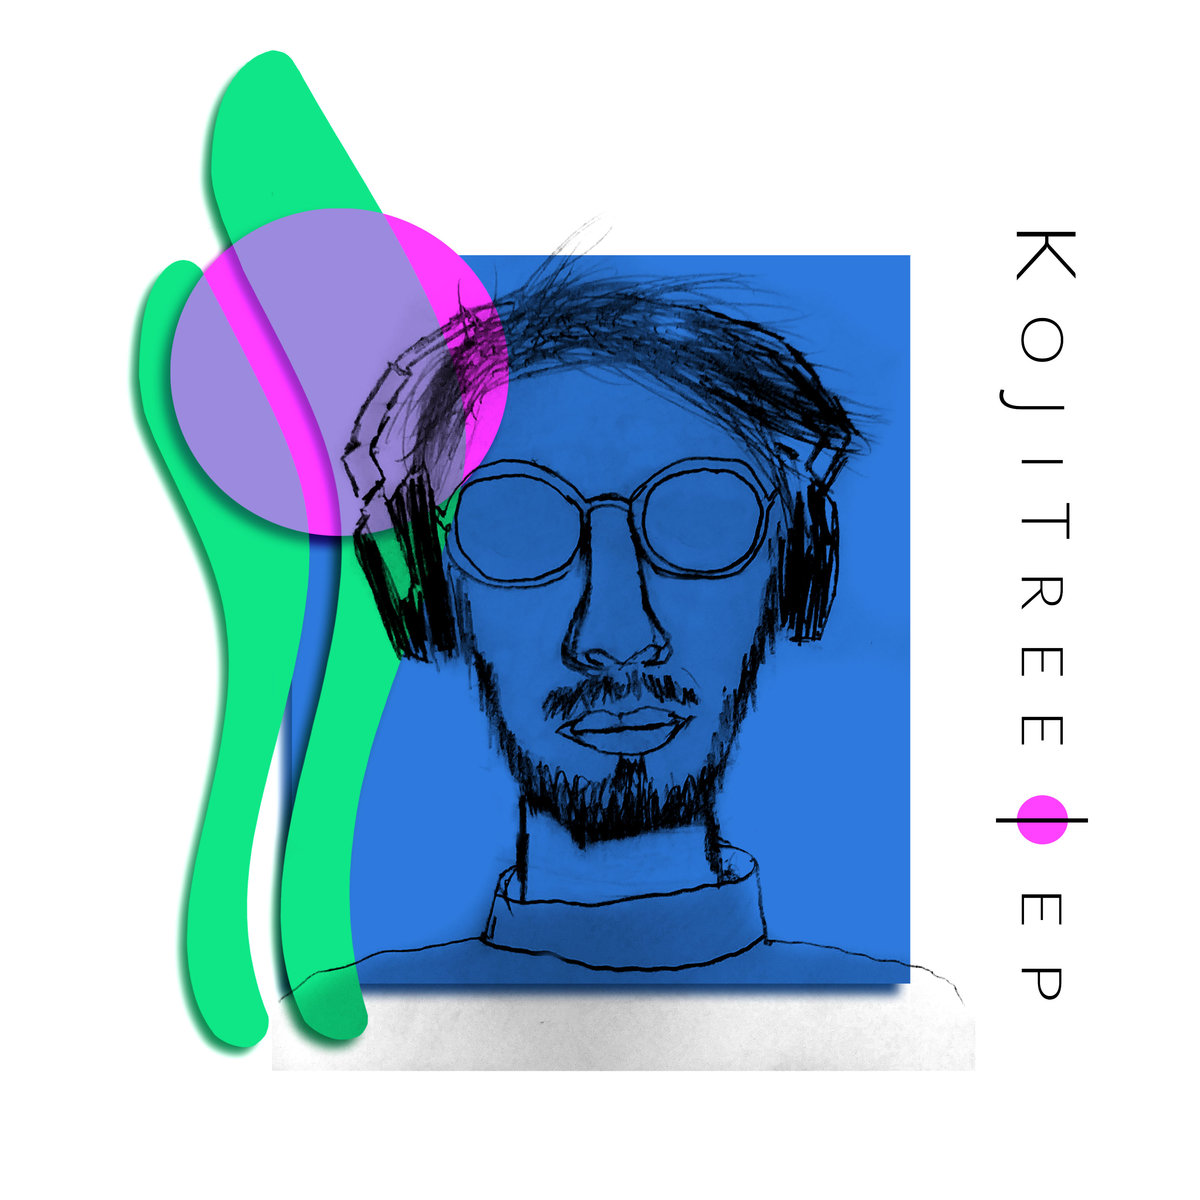 Introducing: Kojitree